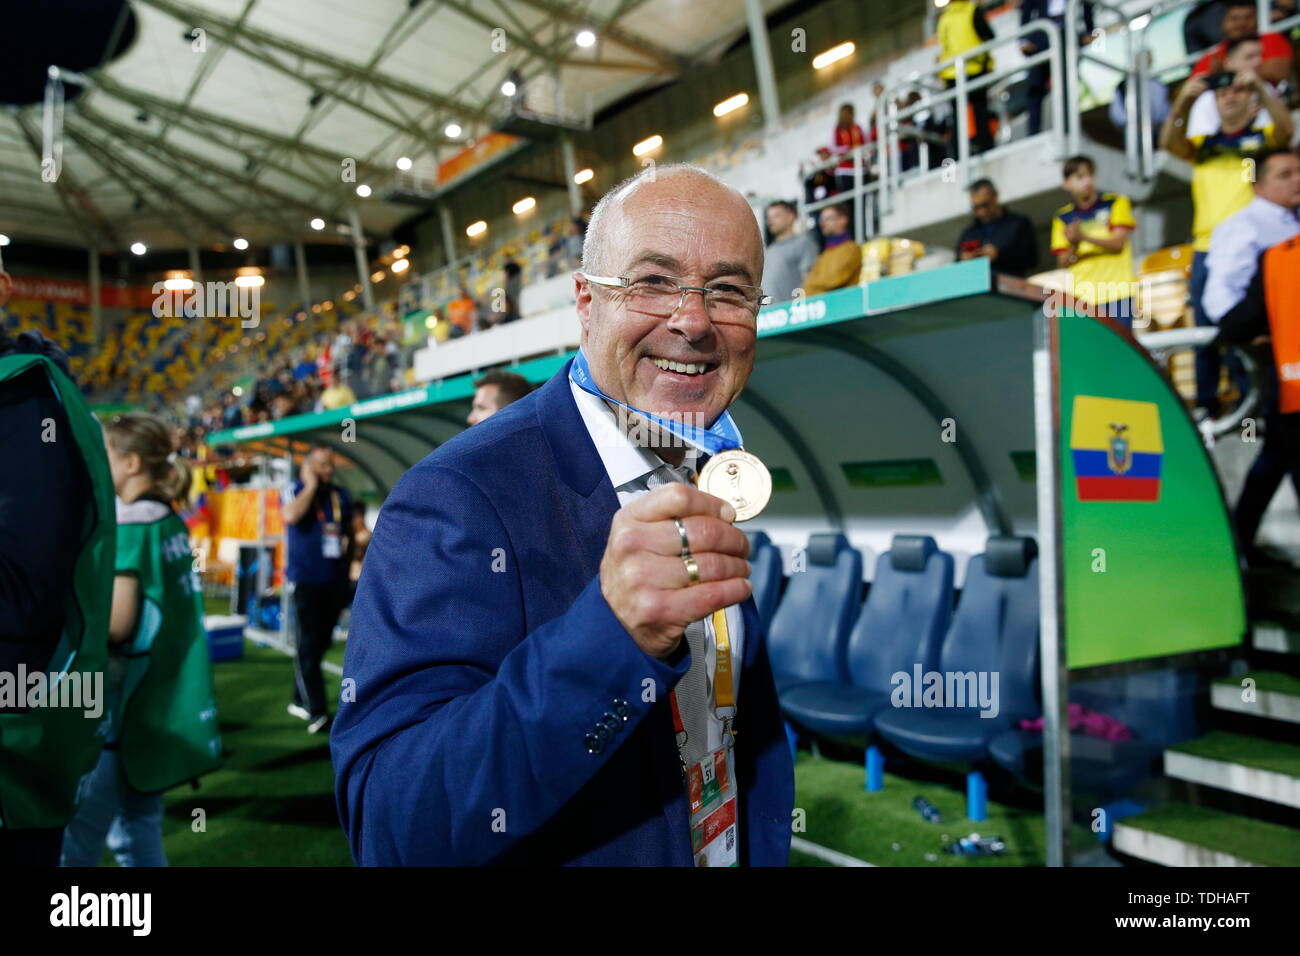 Jorge Celico (ARG), JUN 14, 2019 - Football / Soccer : Ecuador head coach Jorge Celico of Argentina celebrate after winning FIFA U-20 World Cup Poland 2019 match for 3rd place between Italy 0-1 Ecuador at the Gdynia Stadium in Gdynia, Poland. (Photo by Mutsu KAWAMORI/AFLO) - Stock Image